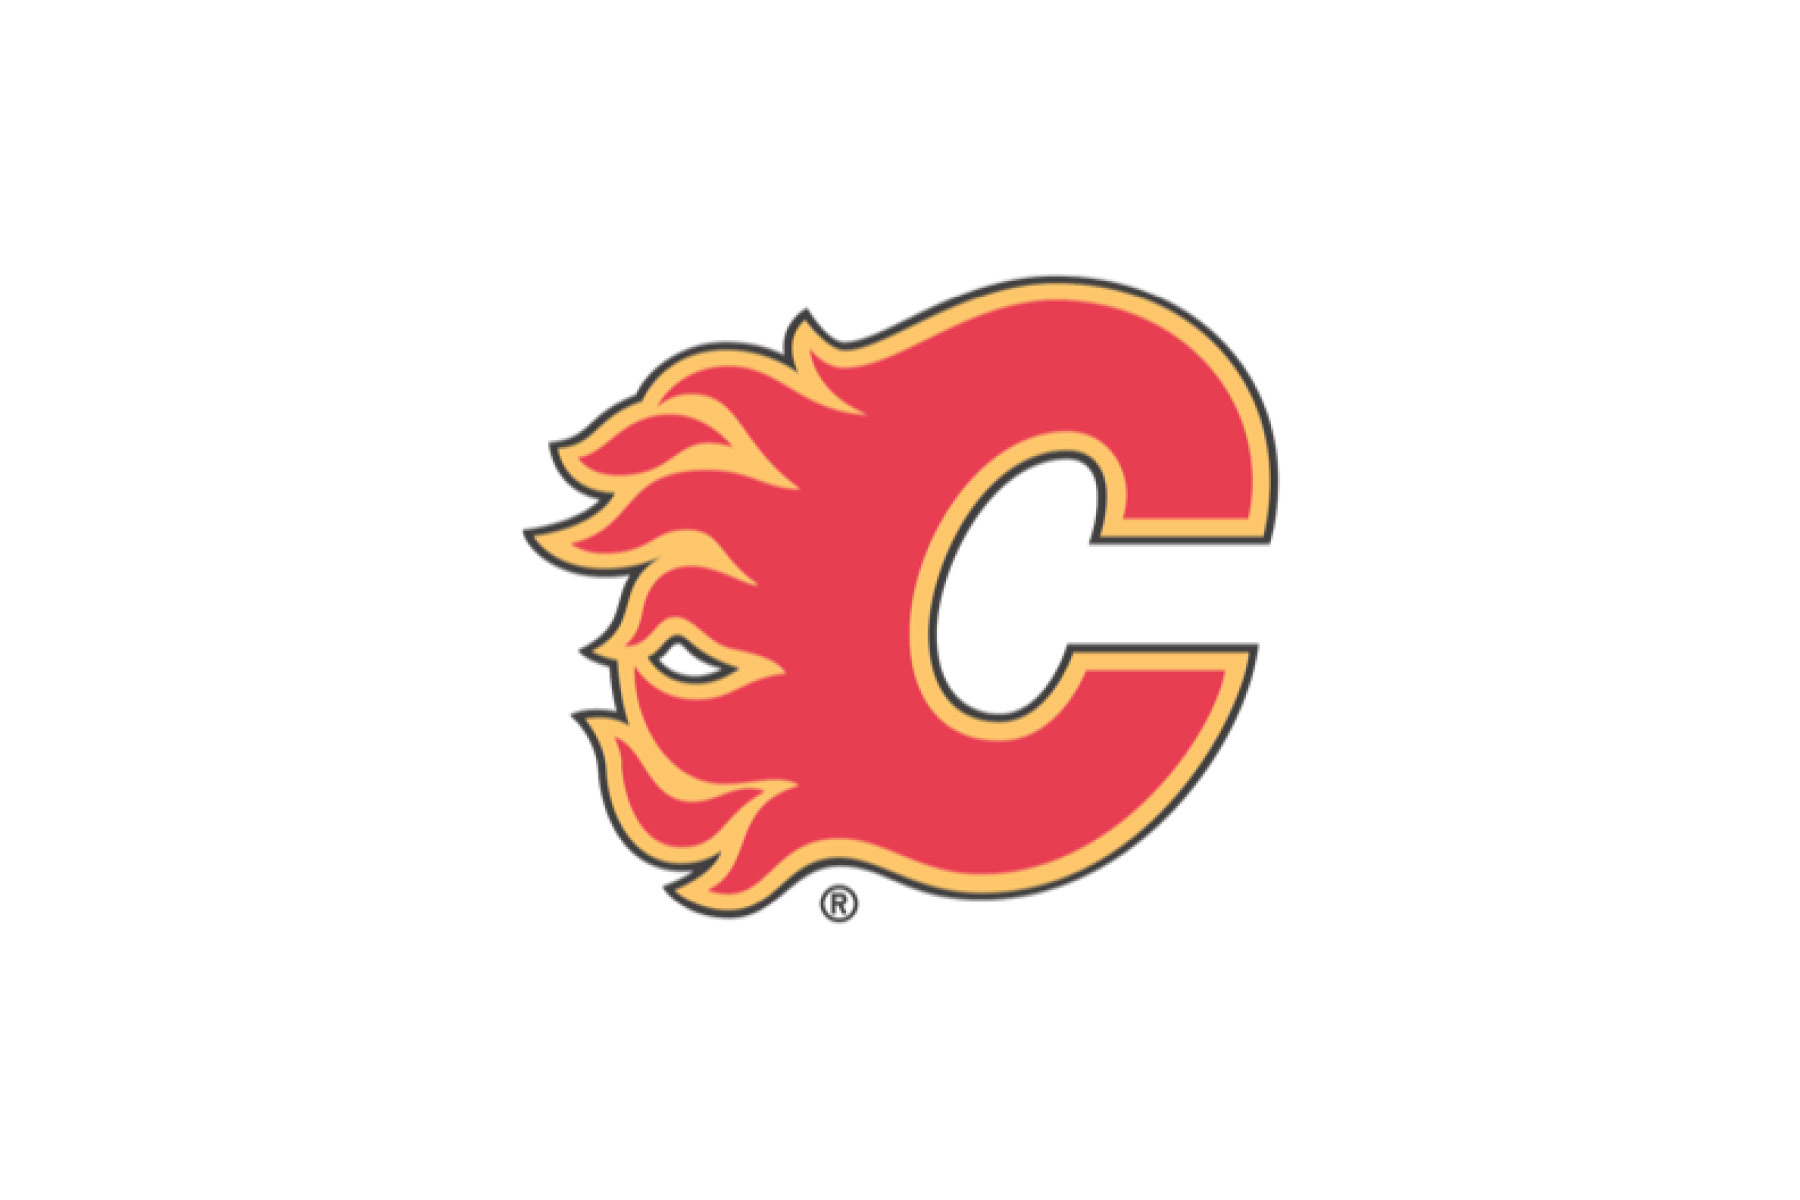 2 x Tickets to a Calgary Flames game